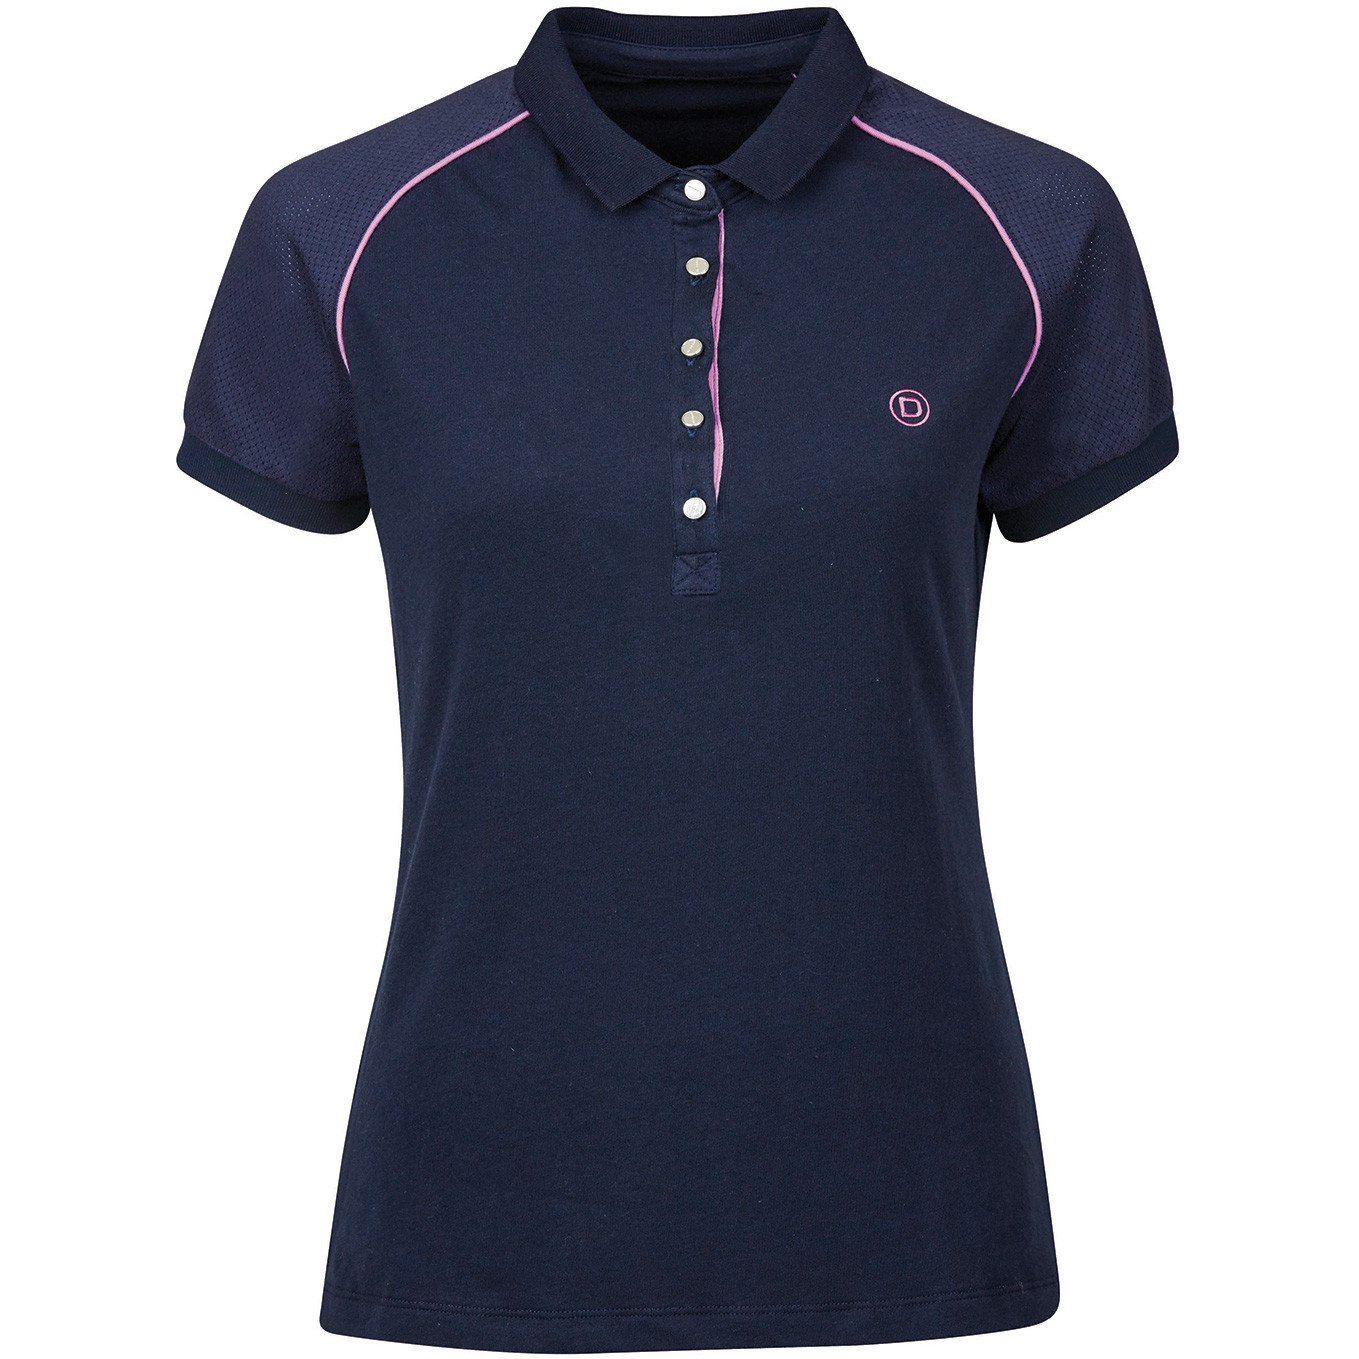 Dublin Keller Polo - Ladies Short Sleeve Show Eventing Pony Horse Riding Shirt